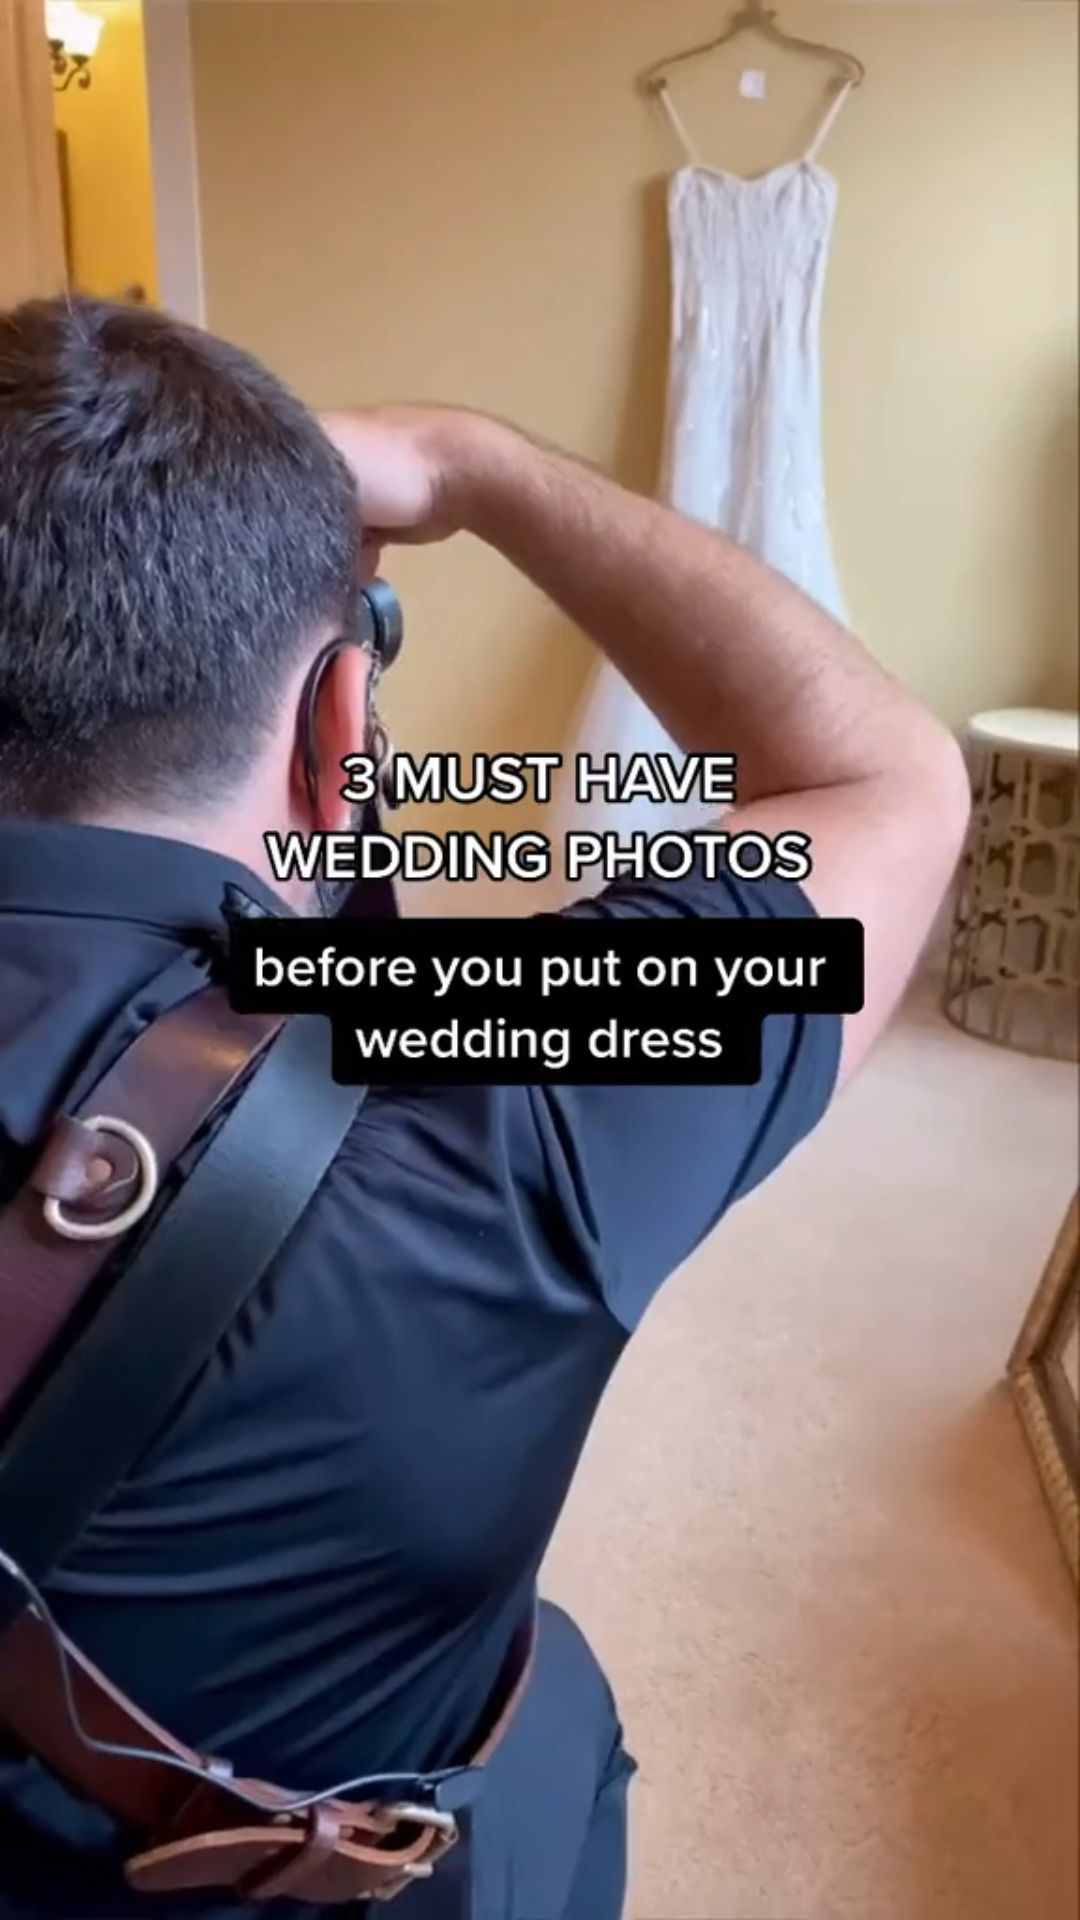 Must have wedding photos on your wedding.